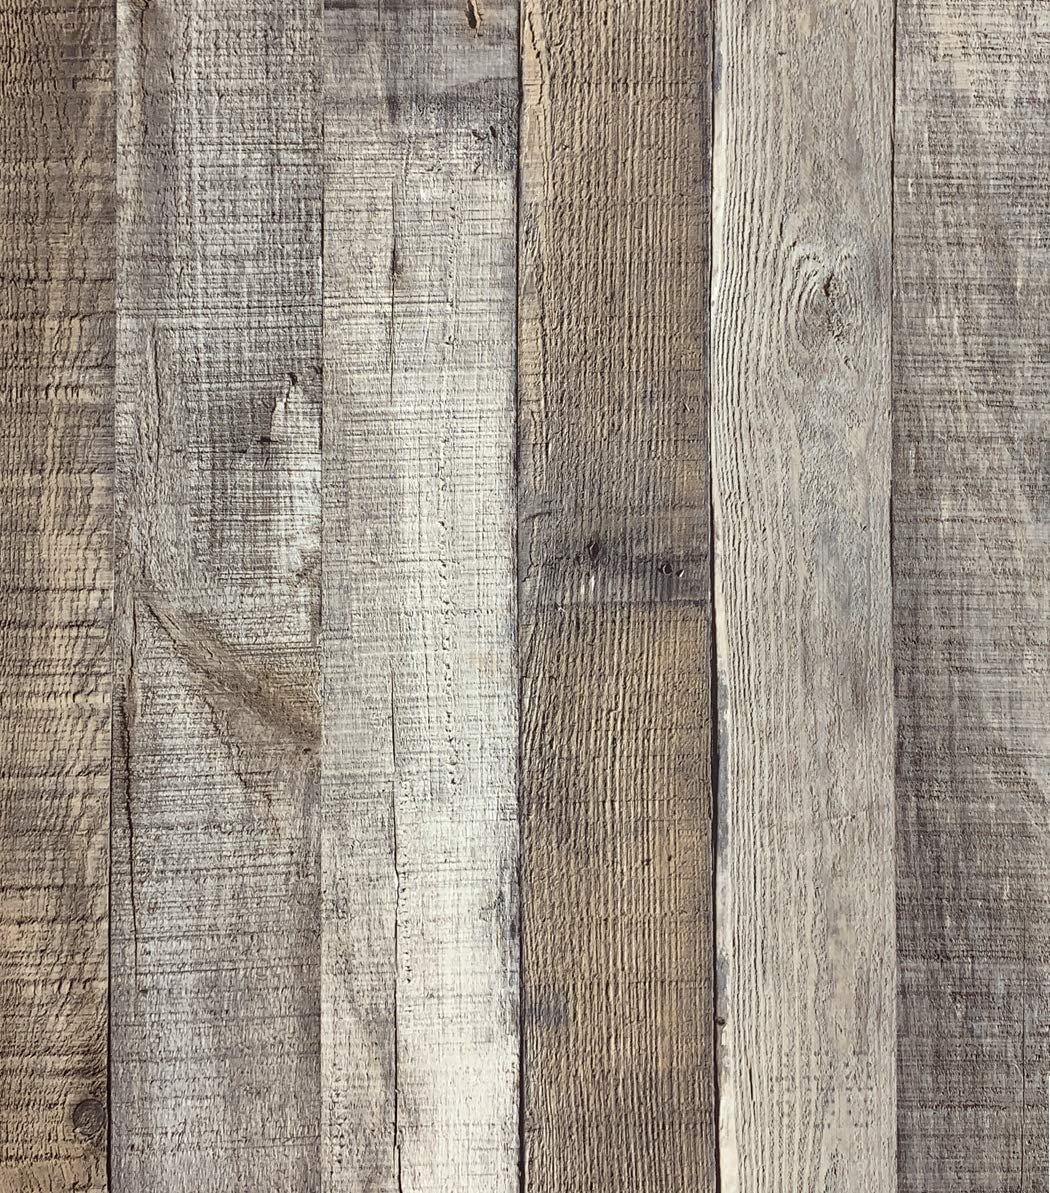 """Distressed Wood Wallpaper Peel and Stick Wallpaper 17.71"""" x 118"""" Faux Plank Wallpaper Self Adhesive Reclaimed Film Shiplap Home Cabinet Vinyl Removable Decorative Waterproof"""